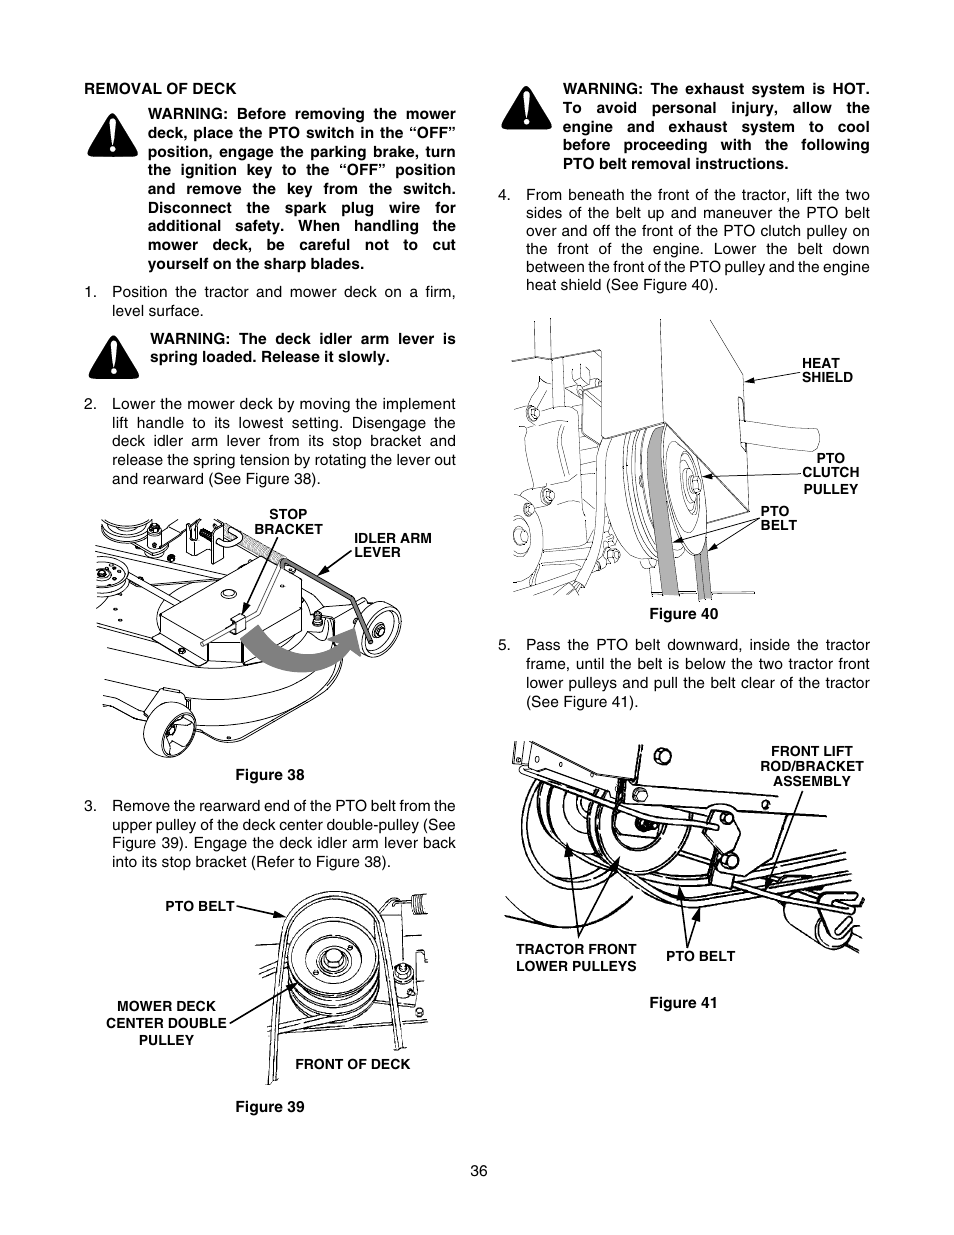 1964 1 2 ford mustang wiring diagrams